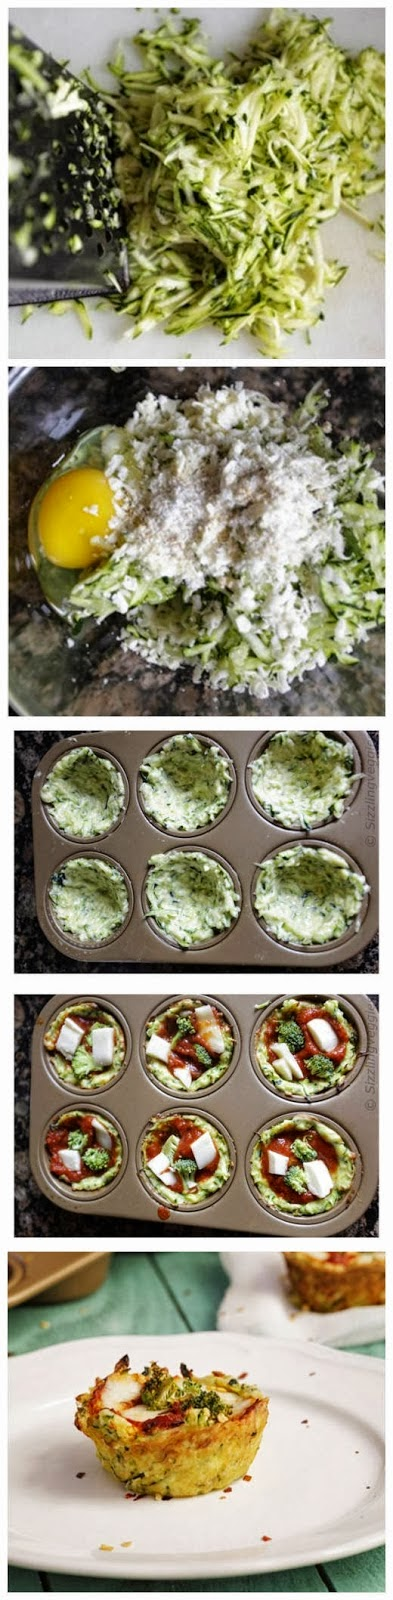 Zucchini crust pizza cups easy food recipe blog yummy food zucchini crust pizza cups easy food recipe blog forumfinder Images